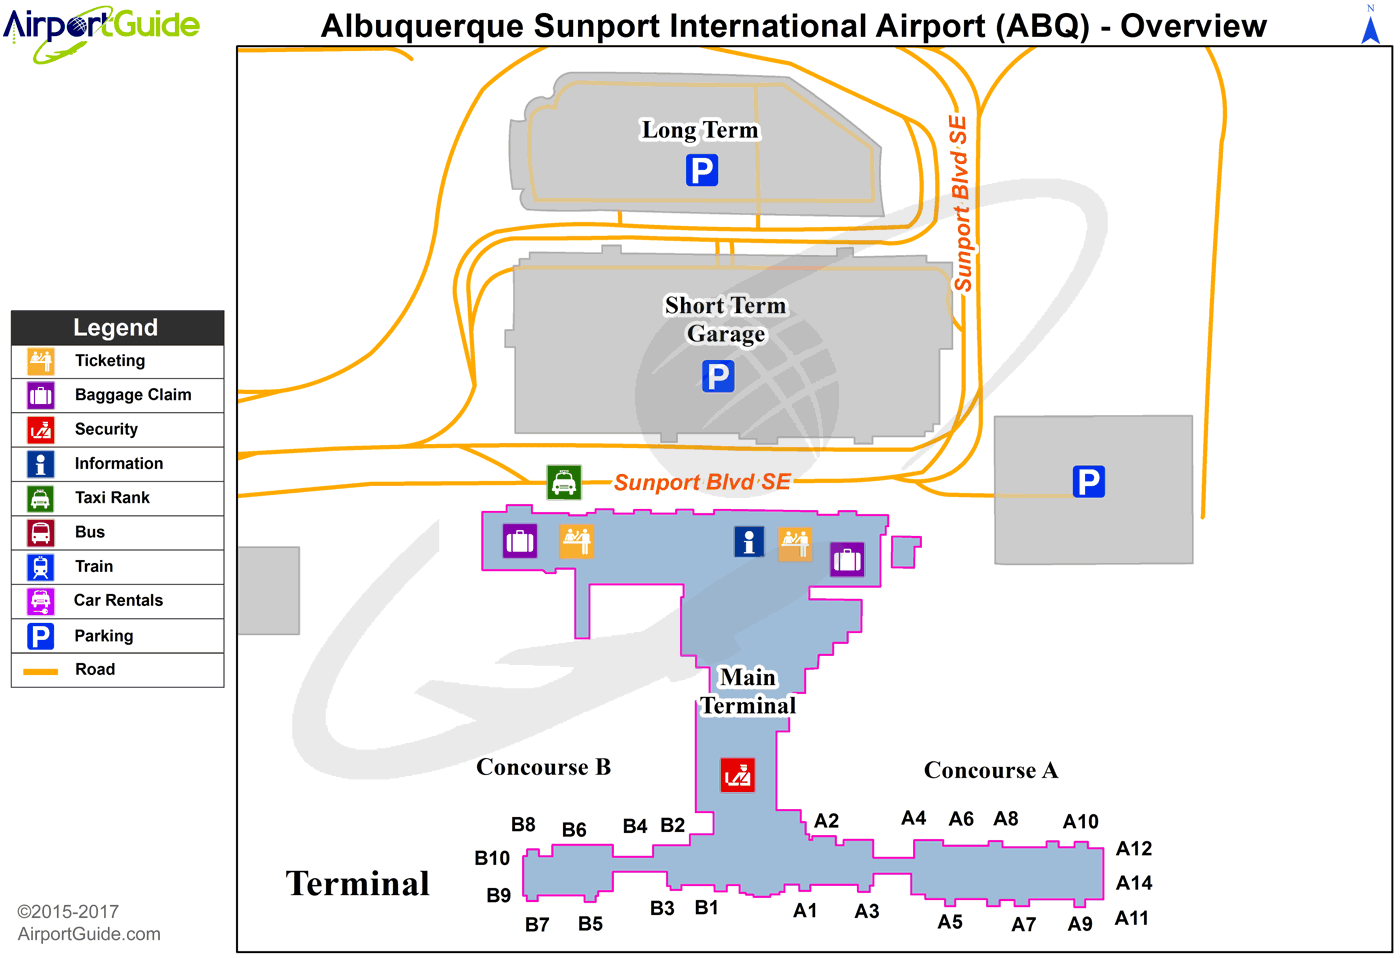 Albuquerque - Albuquerque International Sunport (ABQ) Airport Terminal Map - Overview